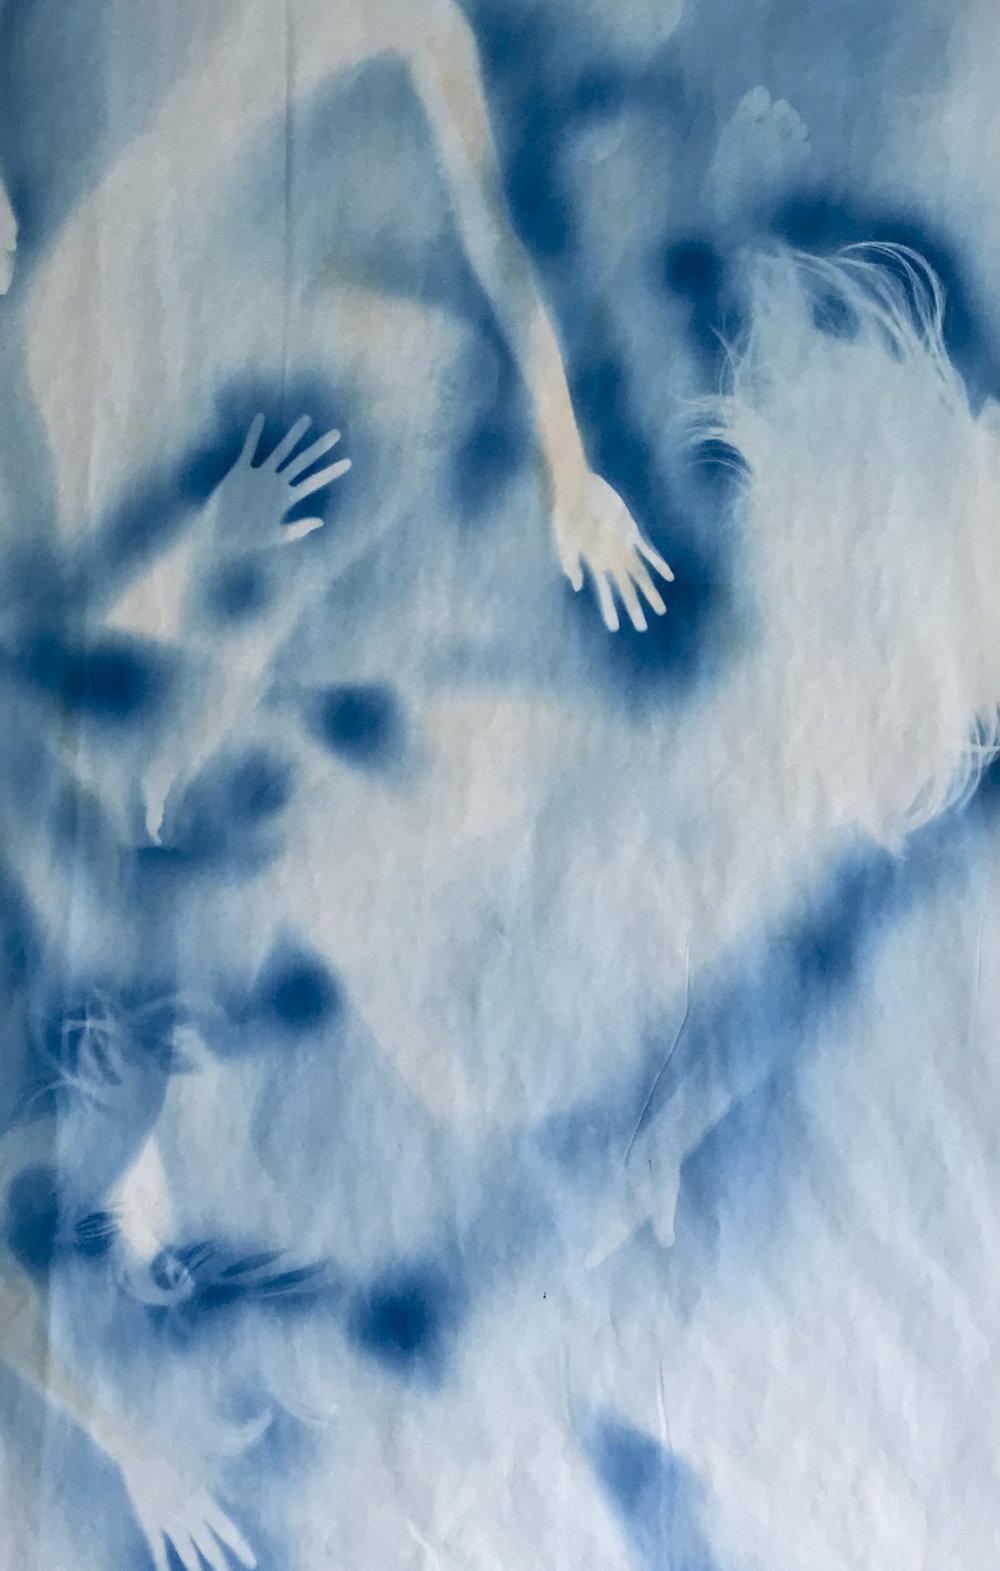 Han Qin,  Ethereal Evolution 1 , 2018. Cyanotype on paper, 82 x 47 inch ©Han Qin, courtesy Fou Gallery